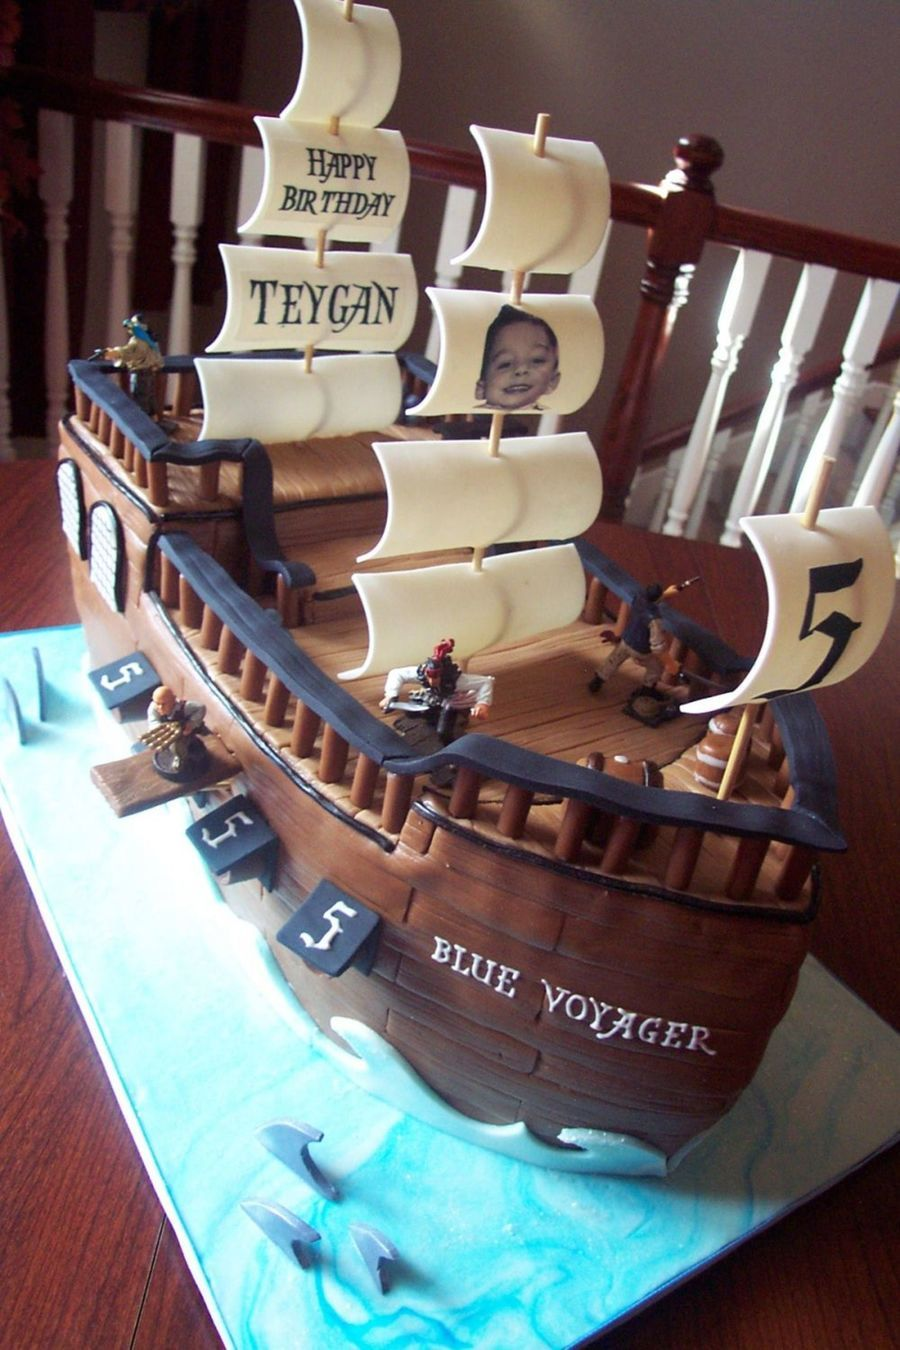 Captain Teygan S Pirate Ship With Images Pirate Birthday Cake